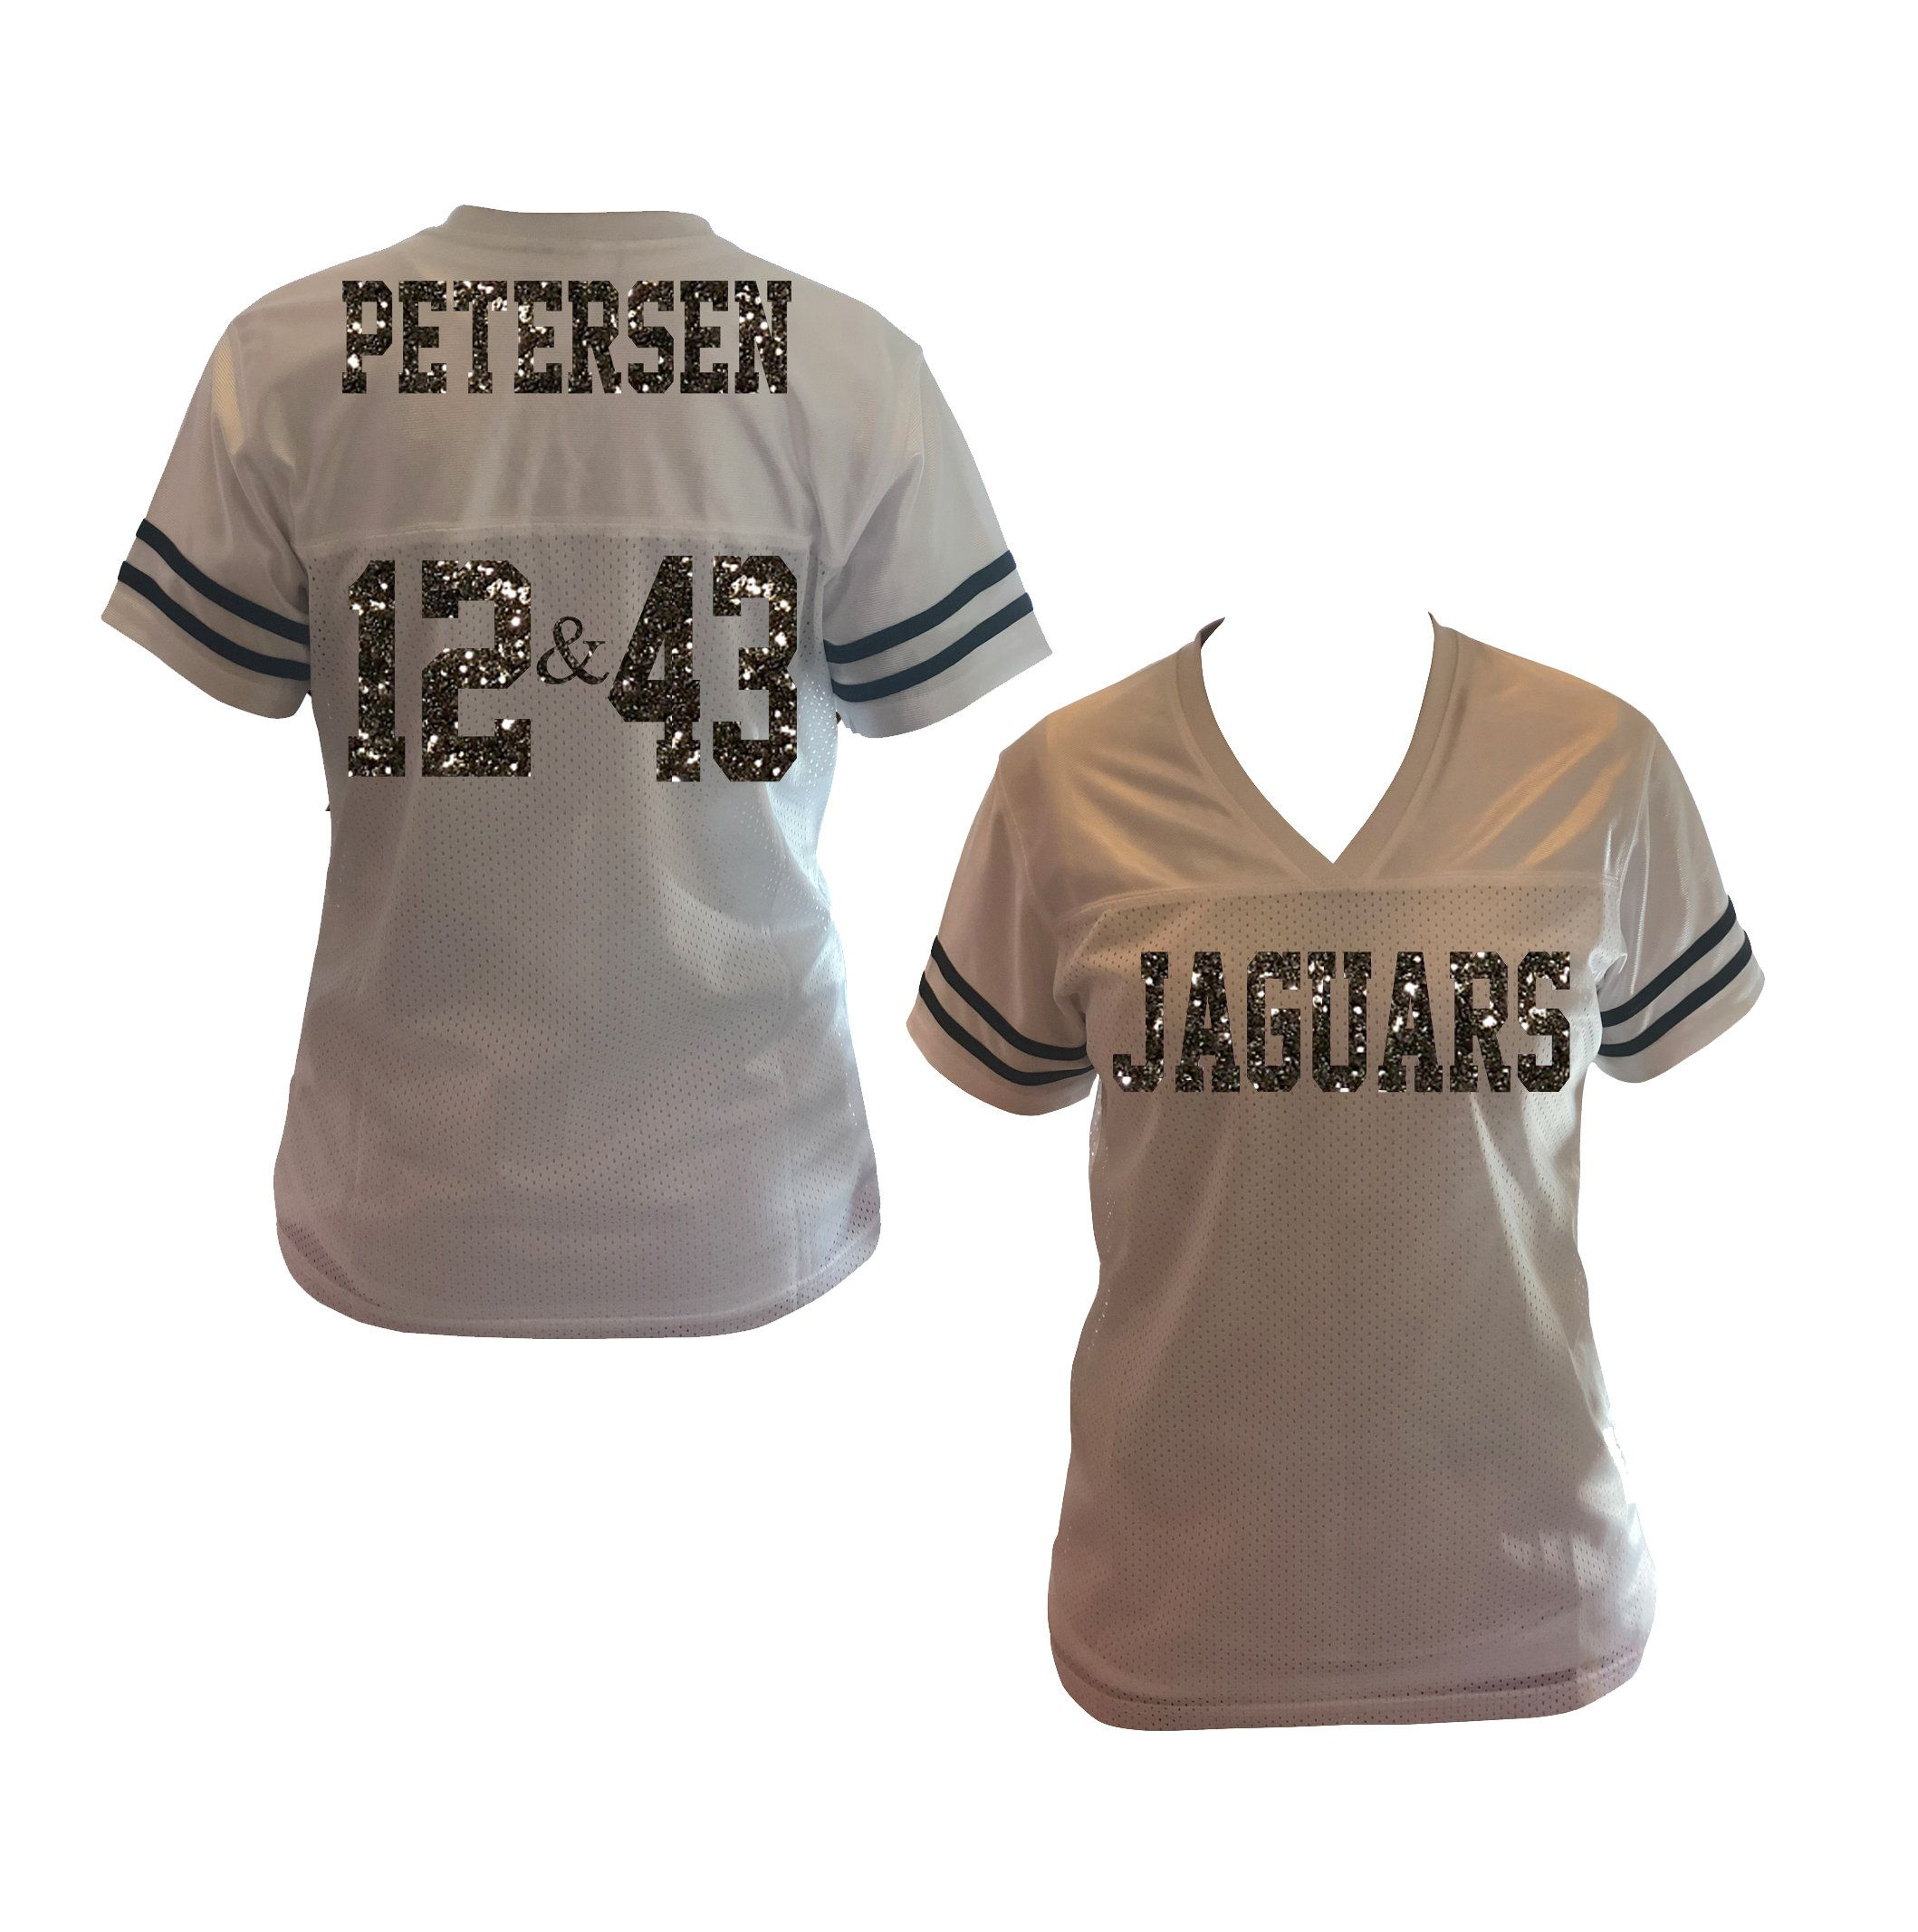 0bafeb3212071 Glitter Two Number Jersey Shirt for Mom & Ladies, Bling Football ...